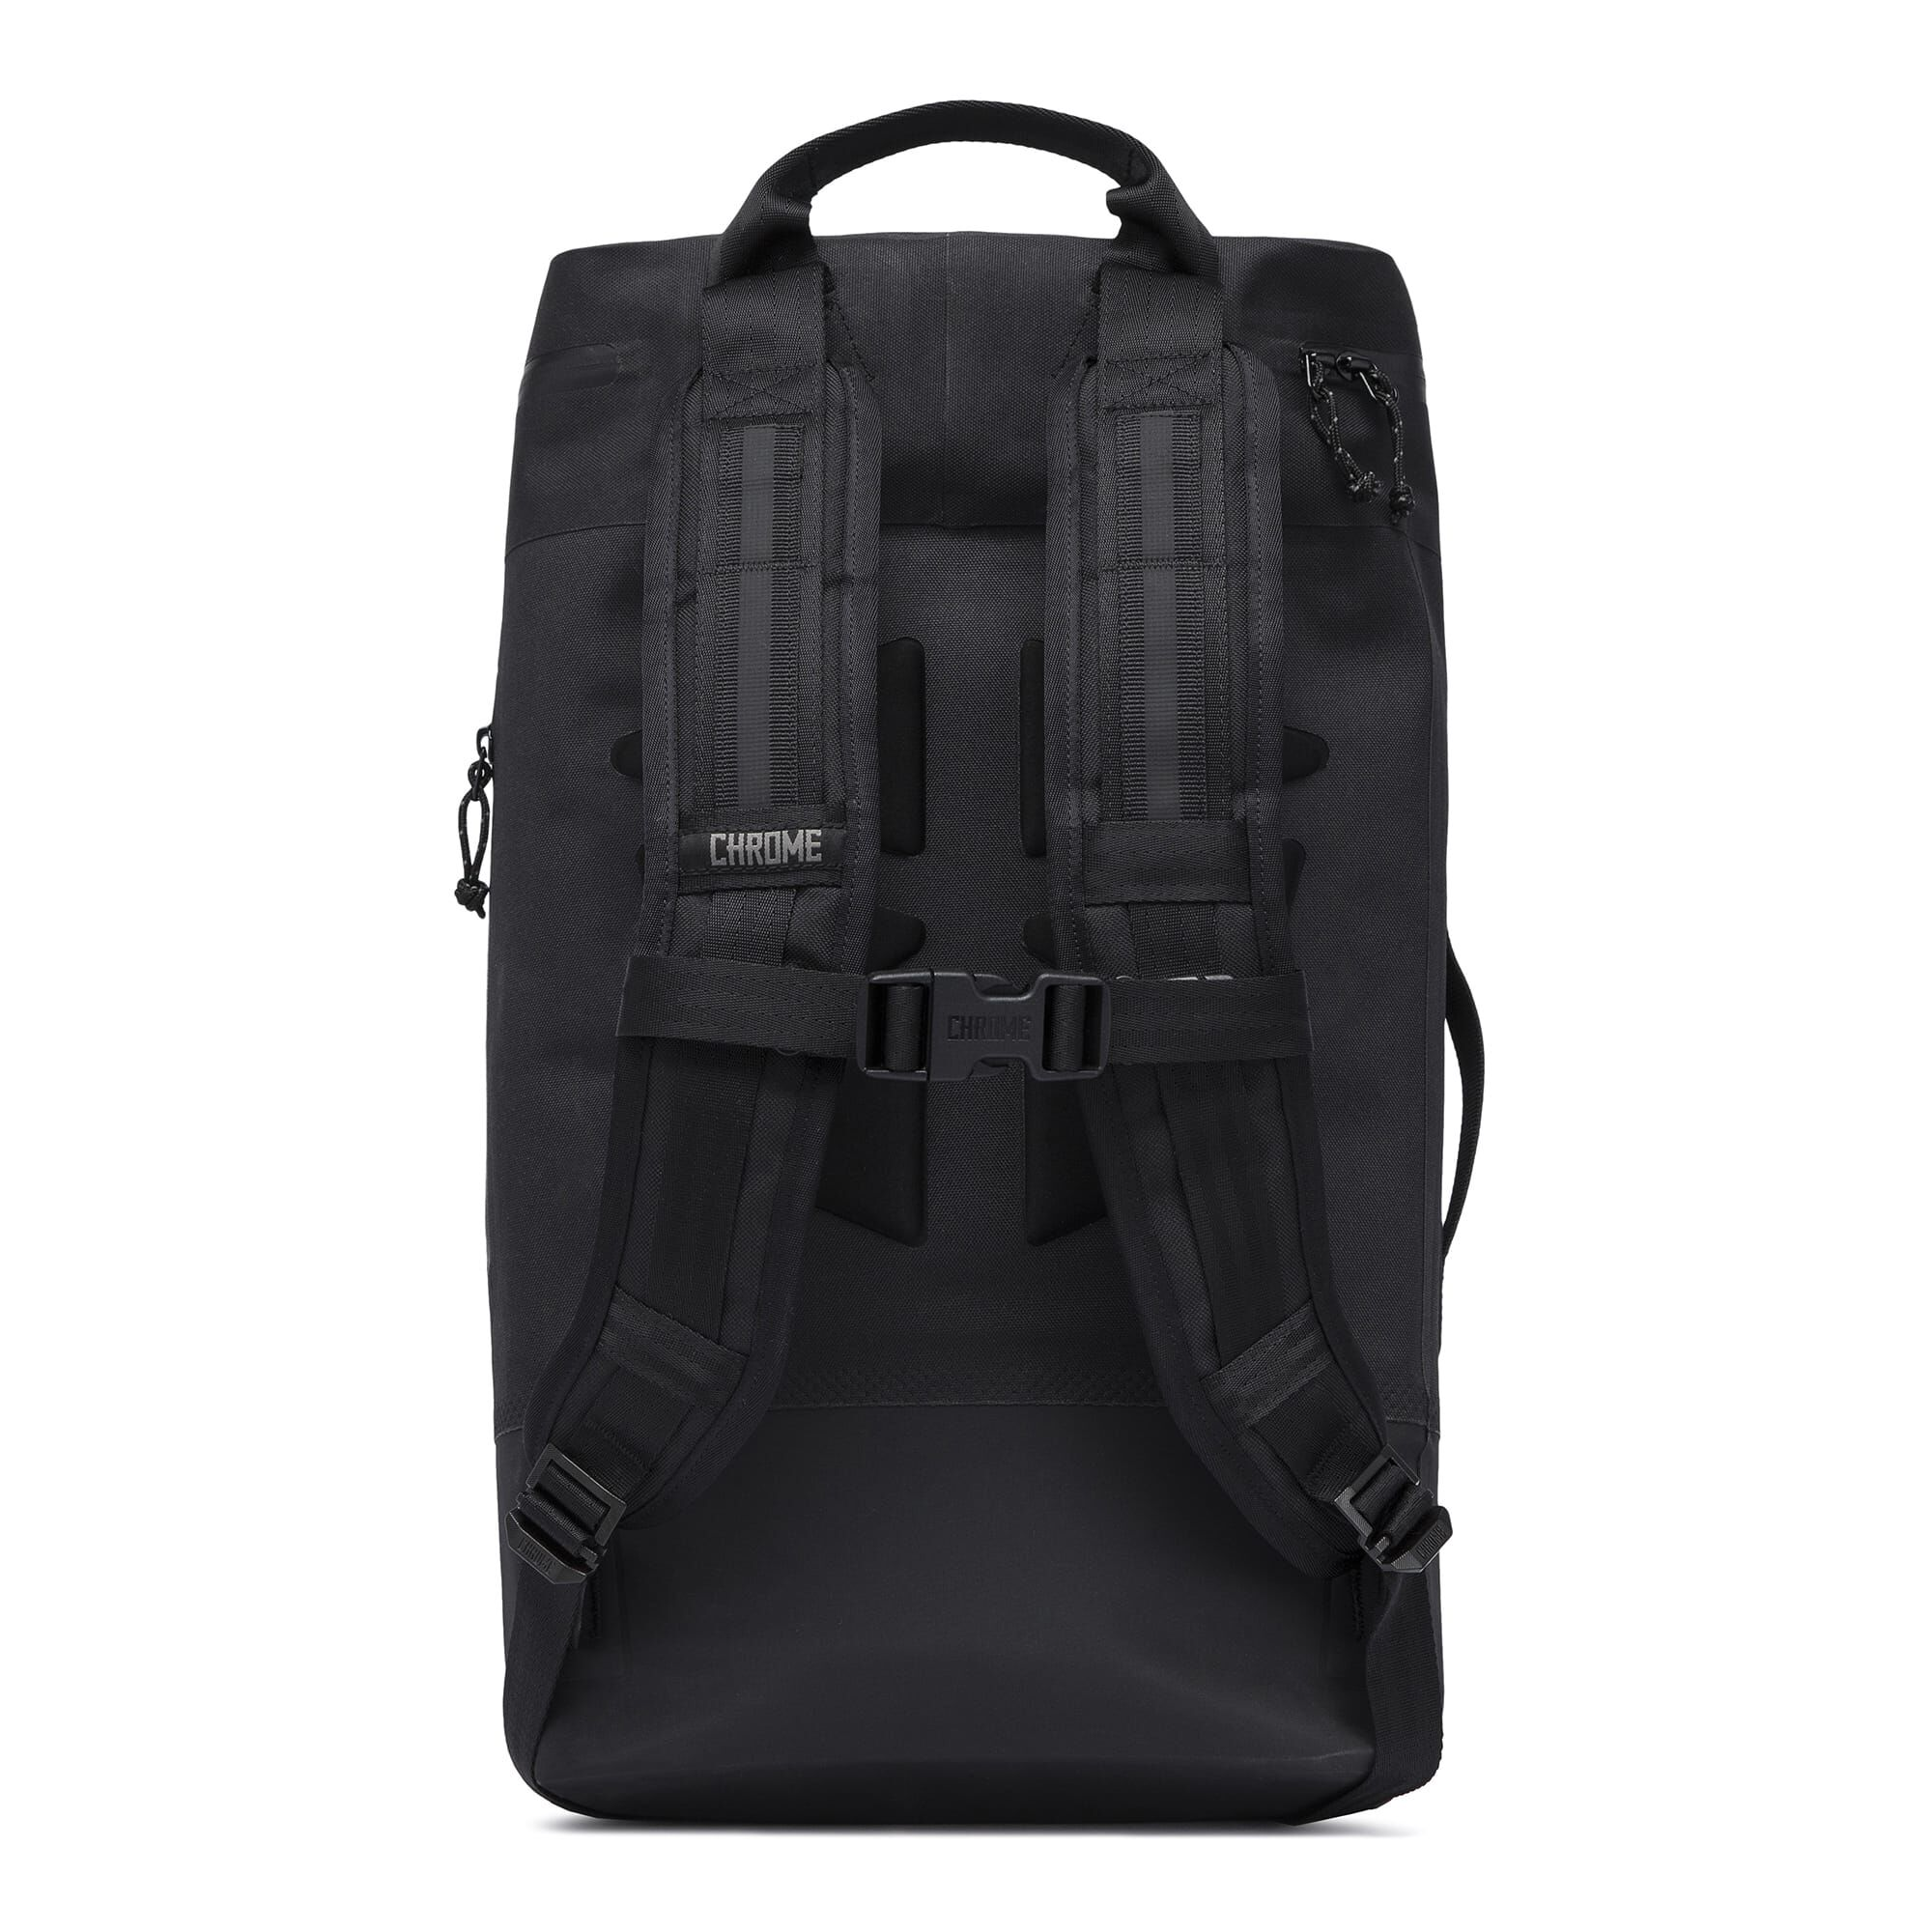 86051066db Urban Ex Gas Can 22L Backpack - Fits laptops up to 15 - 19